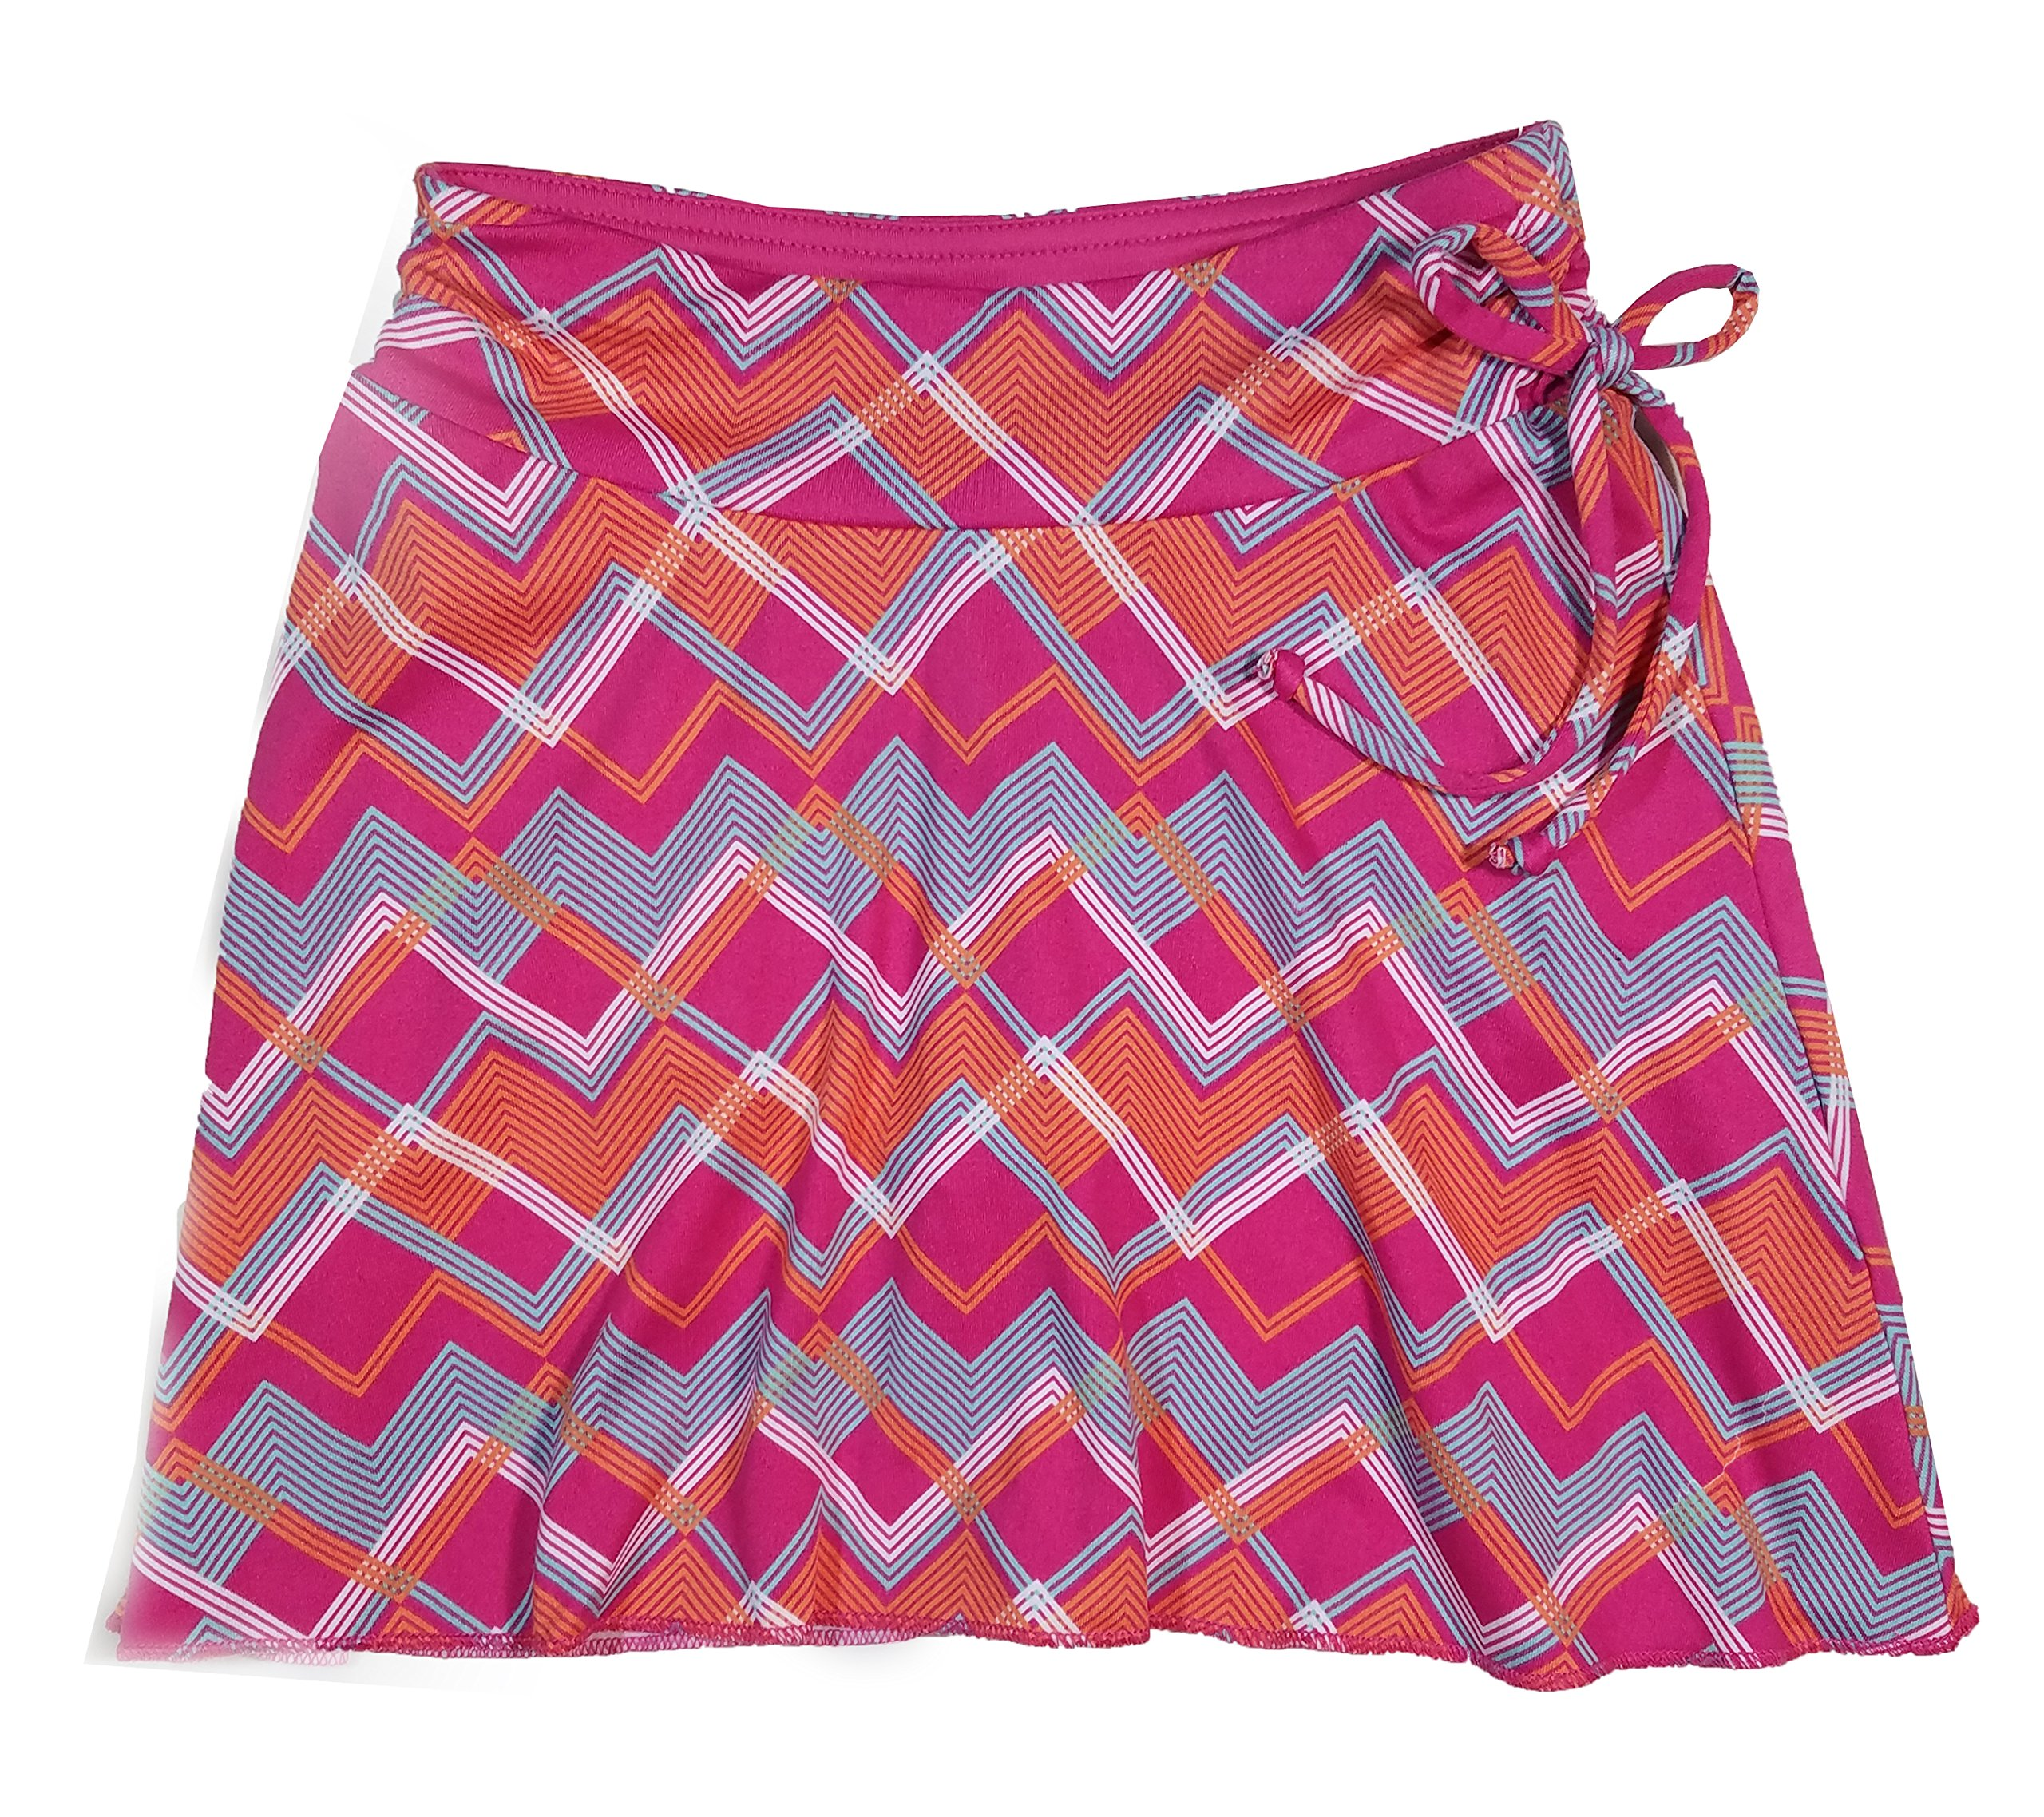 Colorado Clothing Tranquility Girls Sporty Skort (Large (10), Pink Zig Zag)